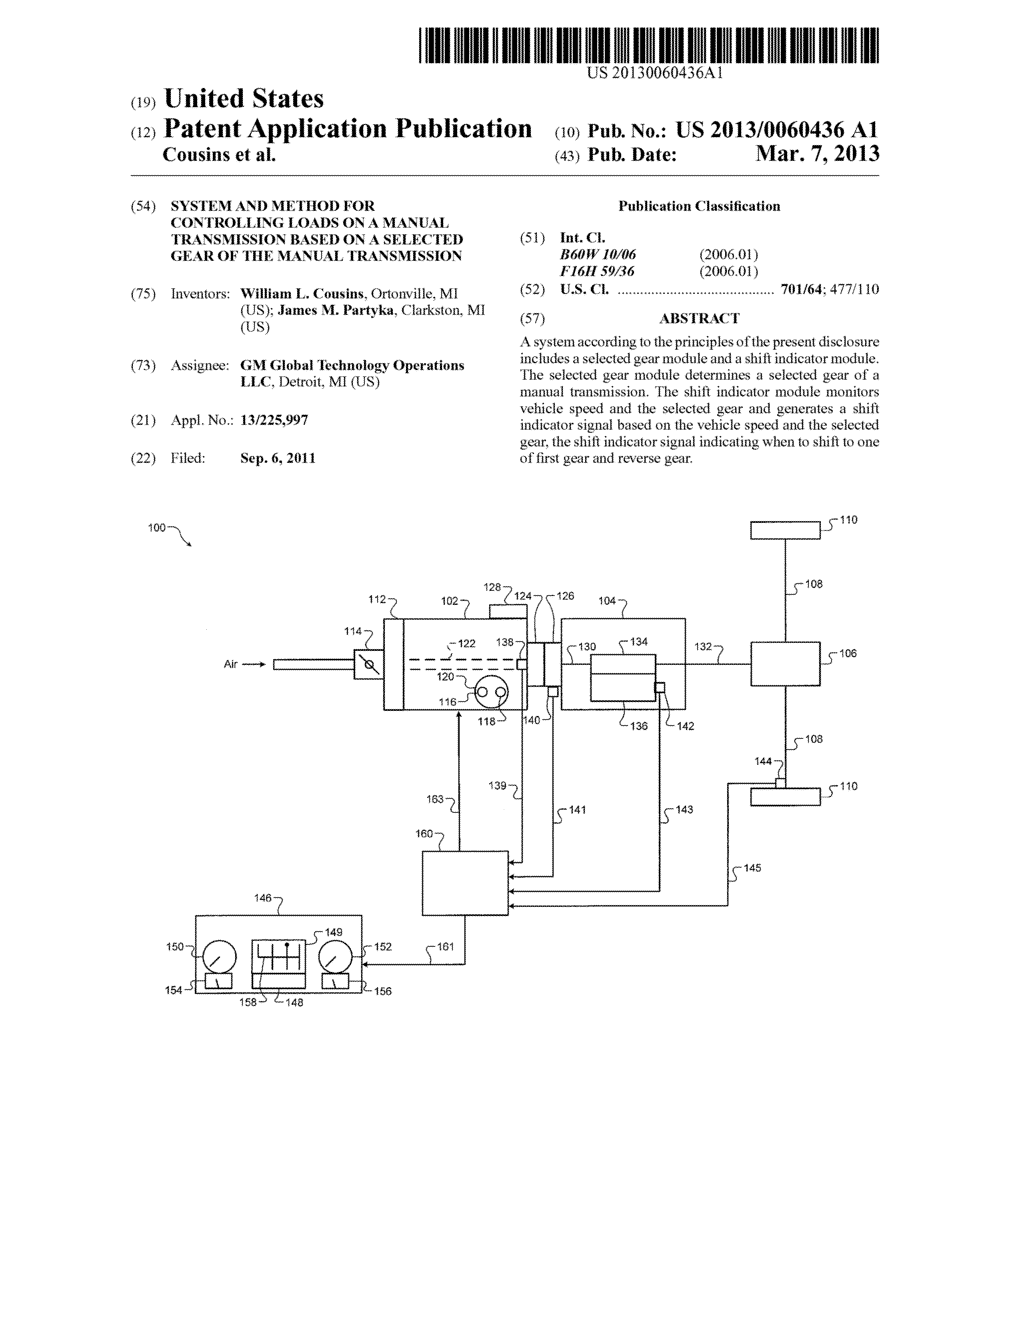 SYSTEM AND METHOD FOR CONTROLLING LOADS ON A MANUAL TRANSMISSION BASED ON     A SELECTED GEAR OF THE MANUAL TRANSMISSION - diagram, schematic, and image 01